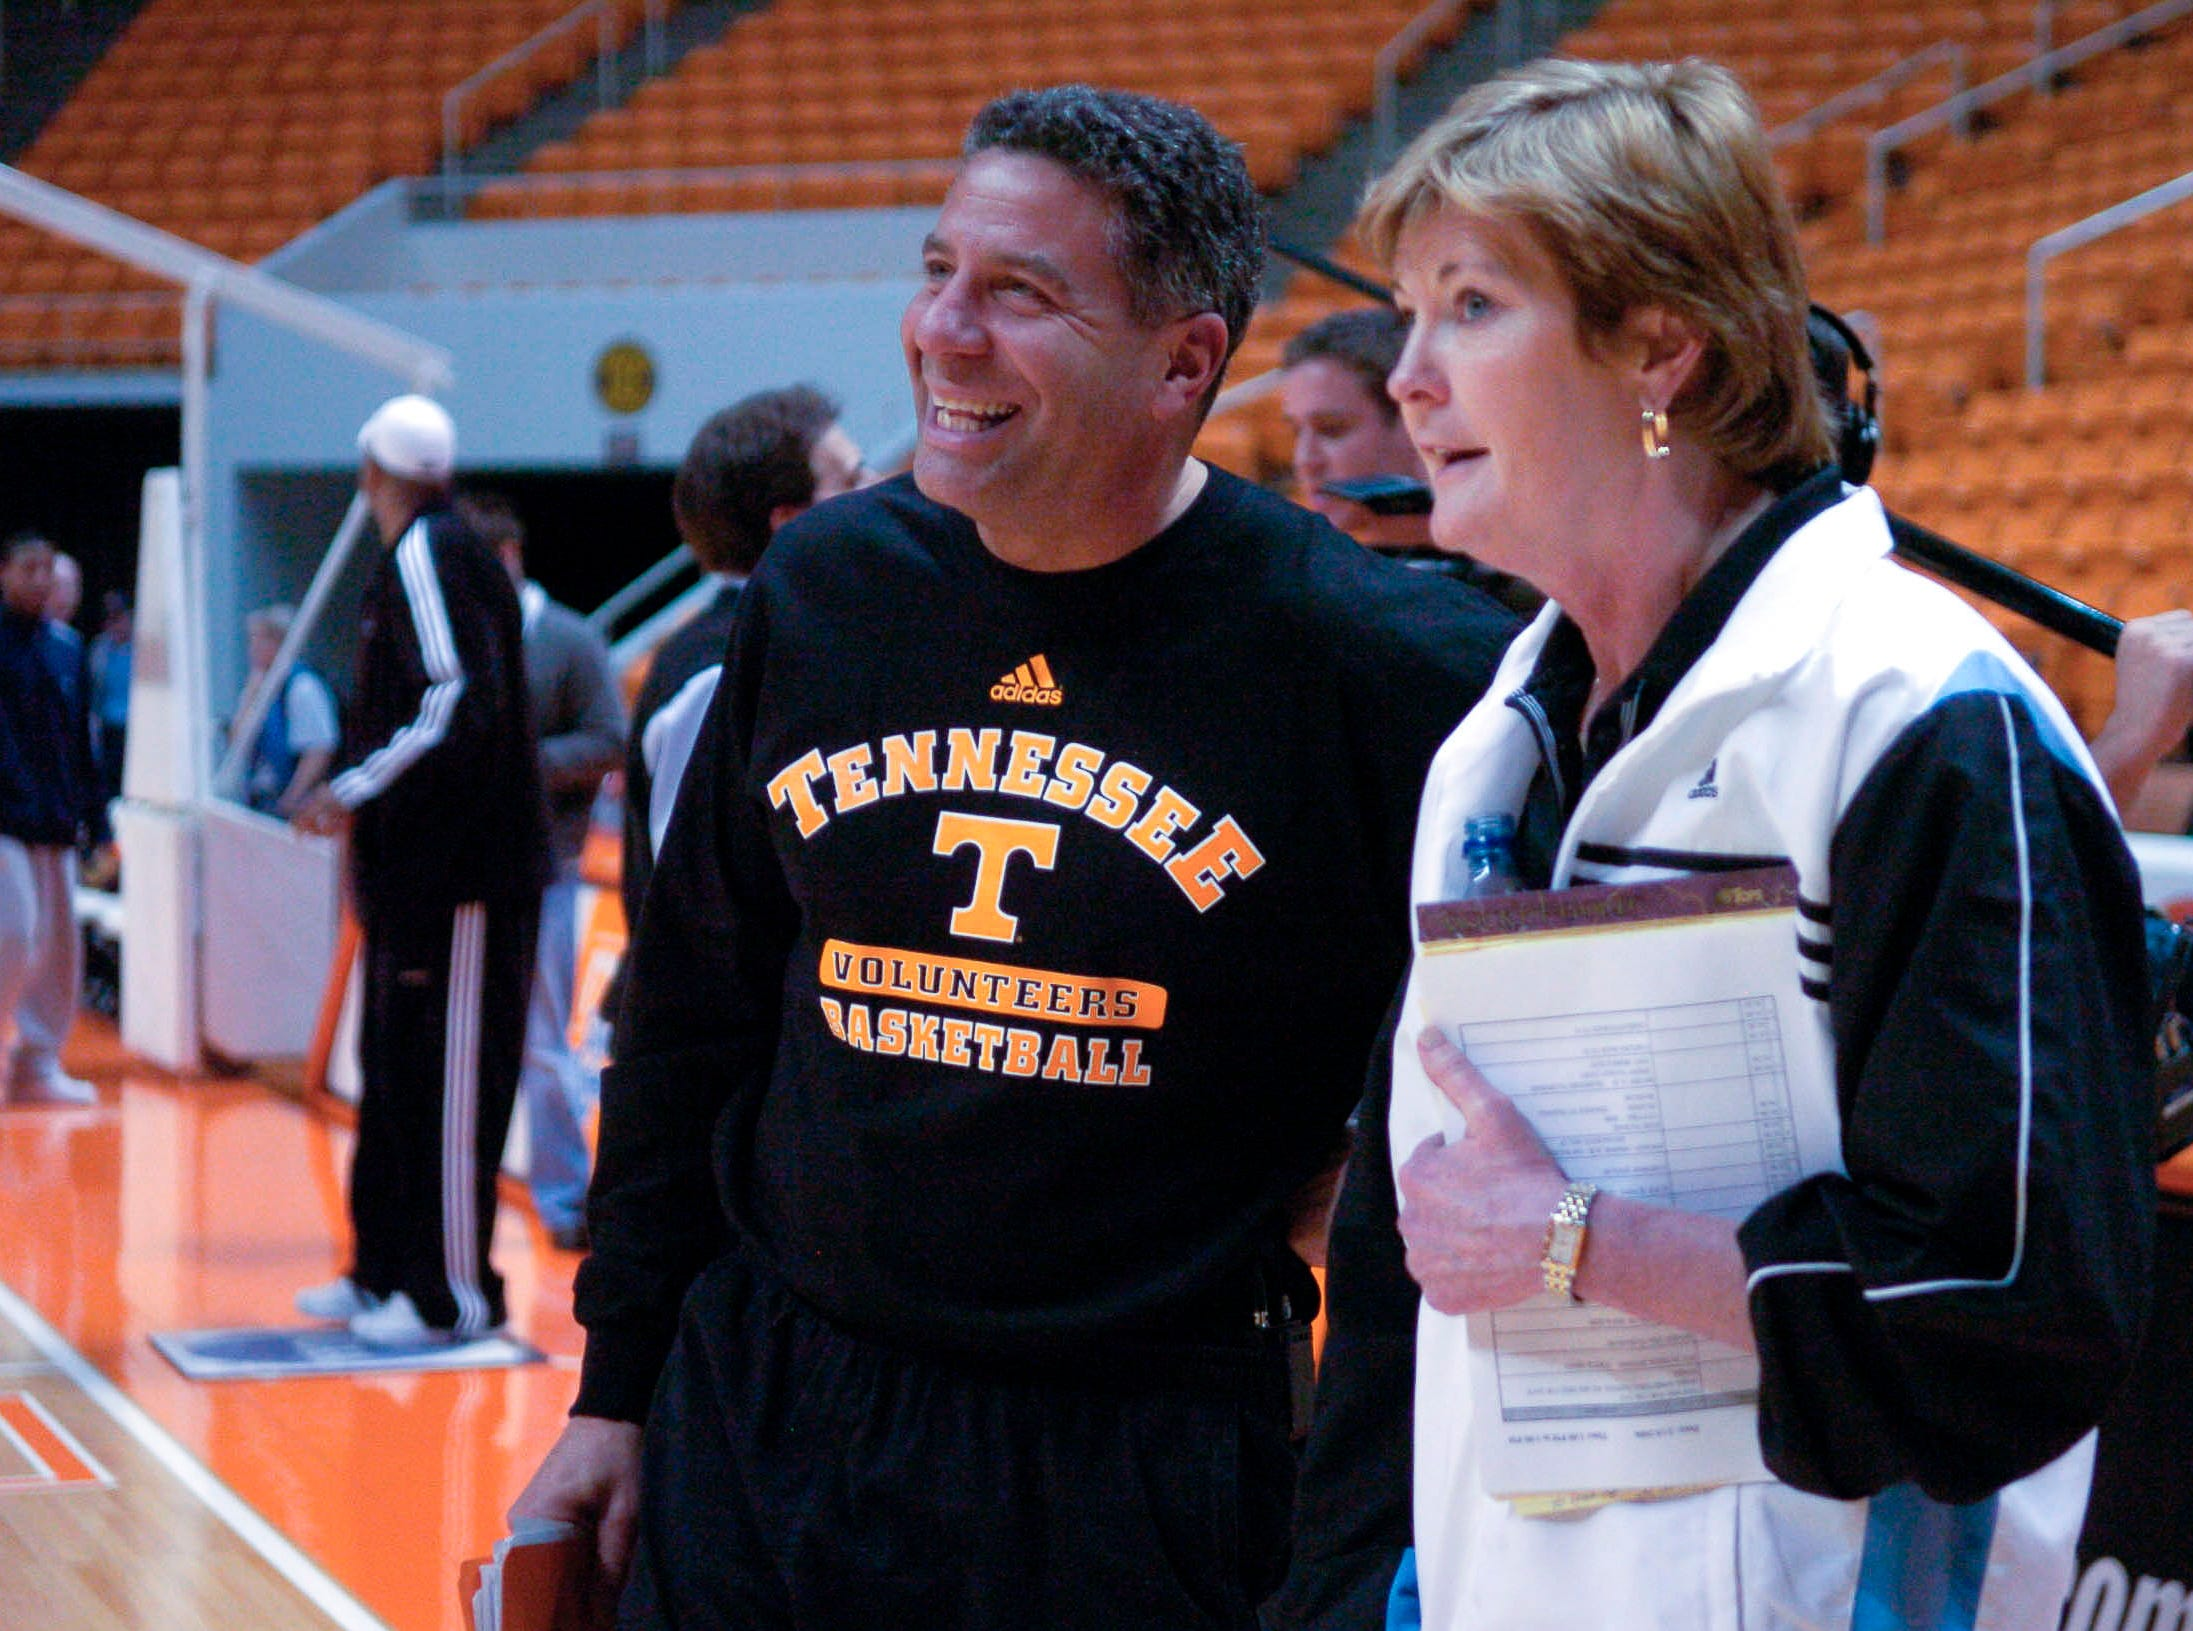 Tennessee basketball coaches Bruce Pearl and Pat Summitt say hello as the men's team enters the court for a walk through before the game against Auburn in 2006.